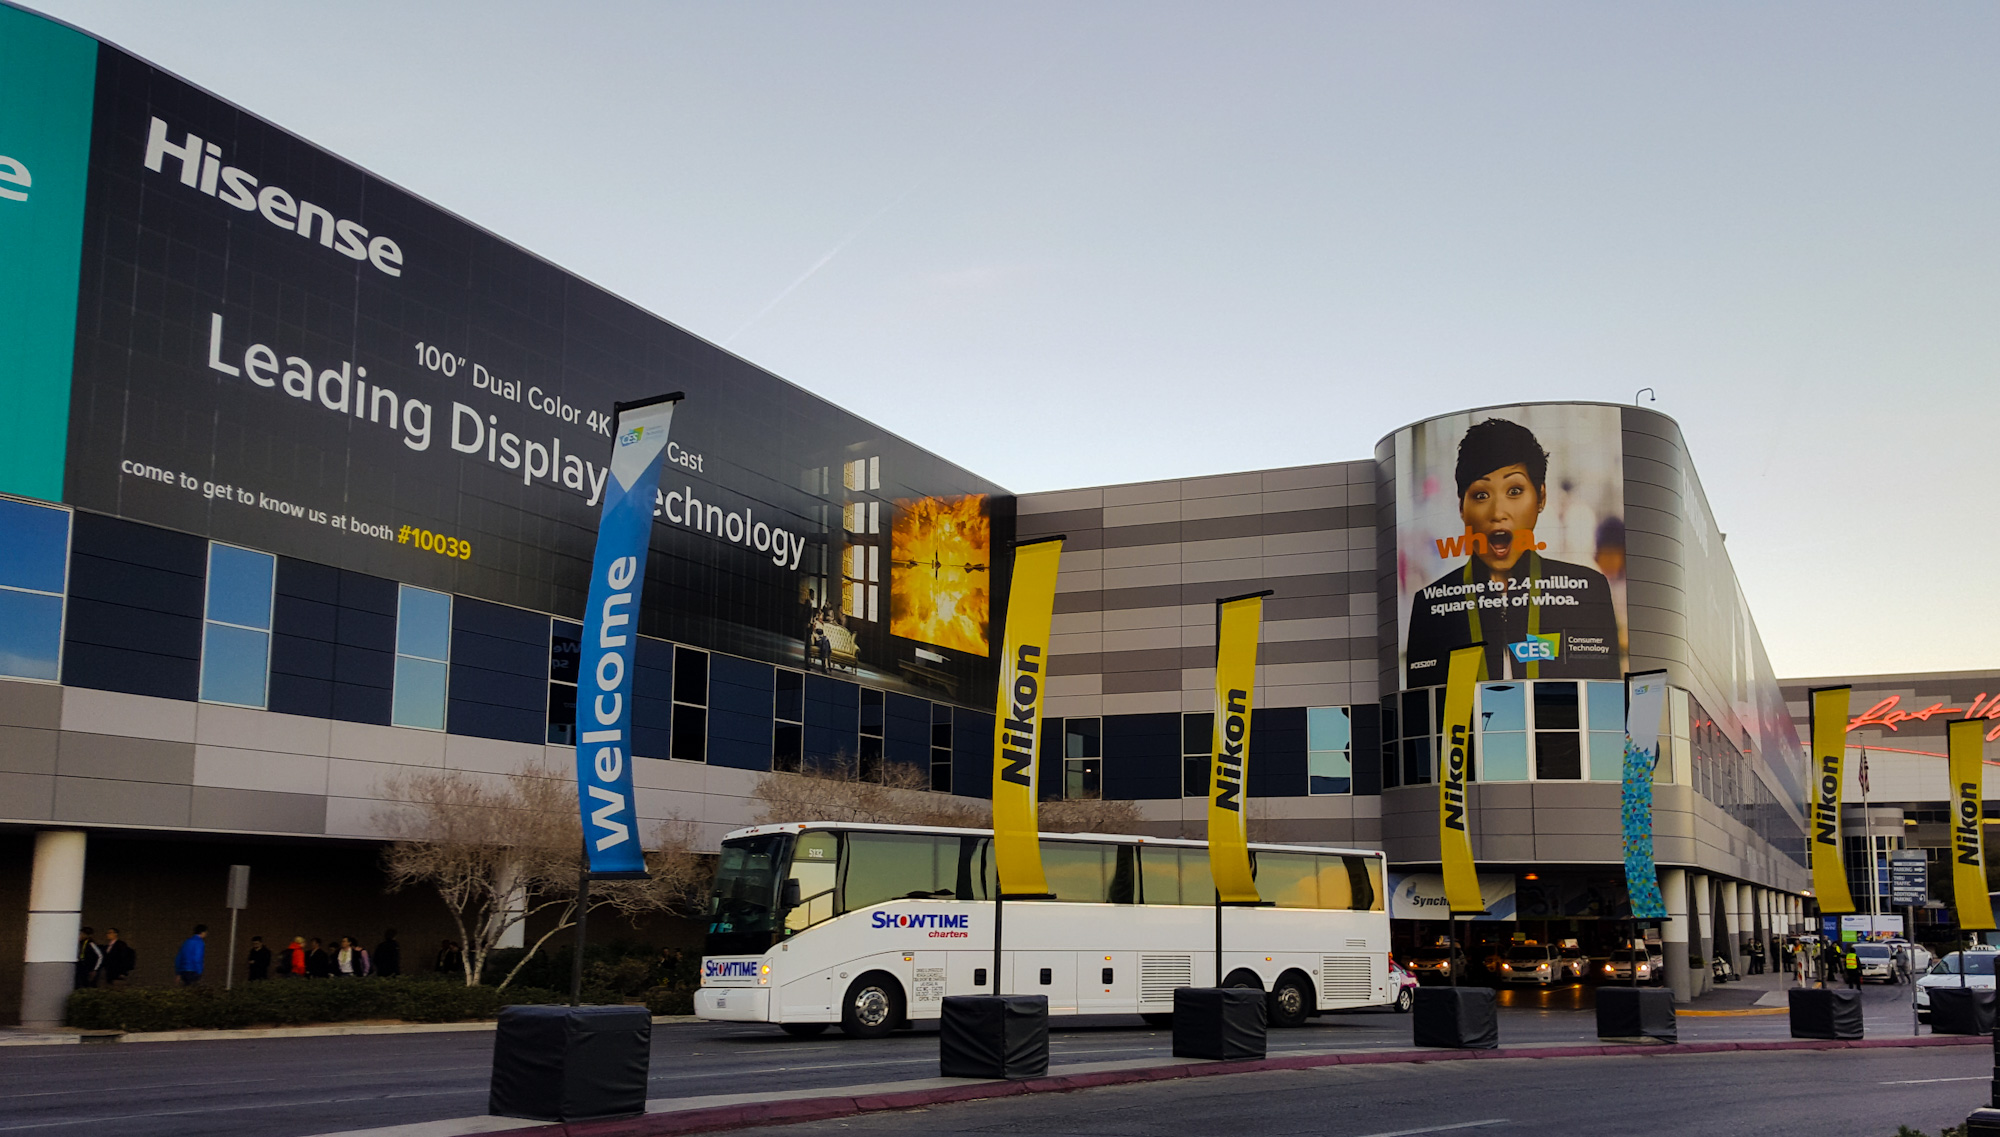 Las Vegas Convention Centre during CES 2017